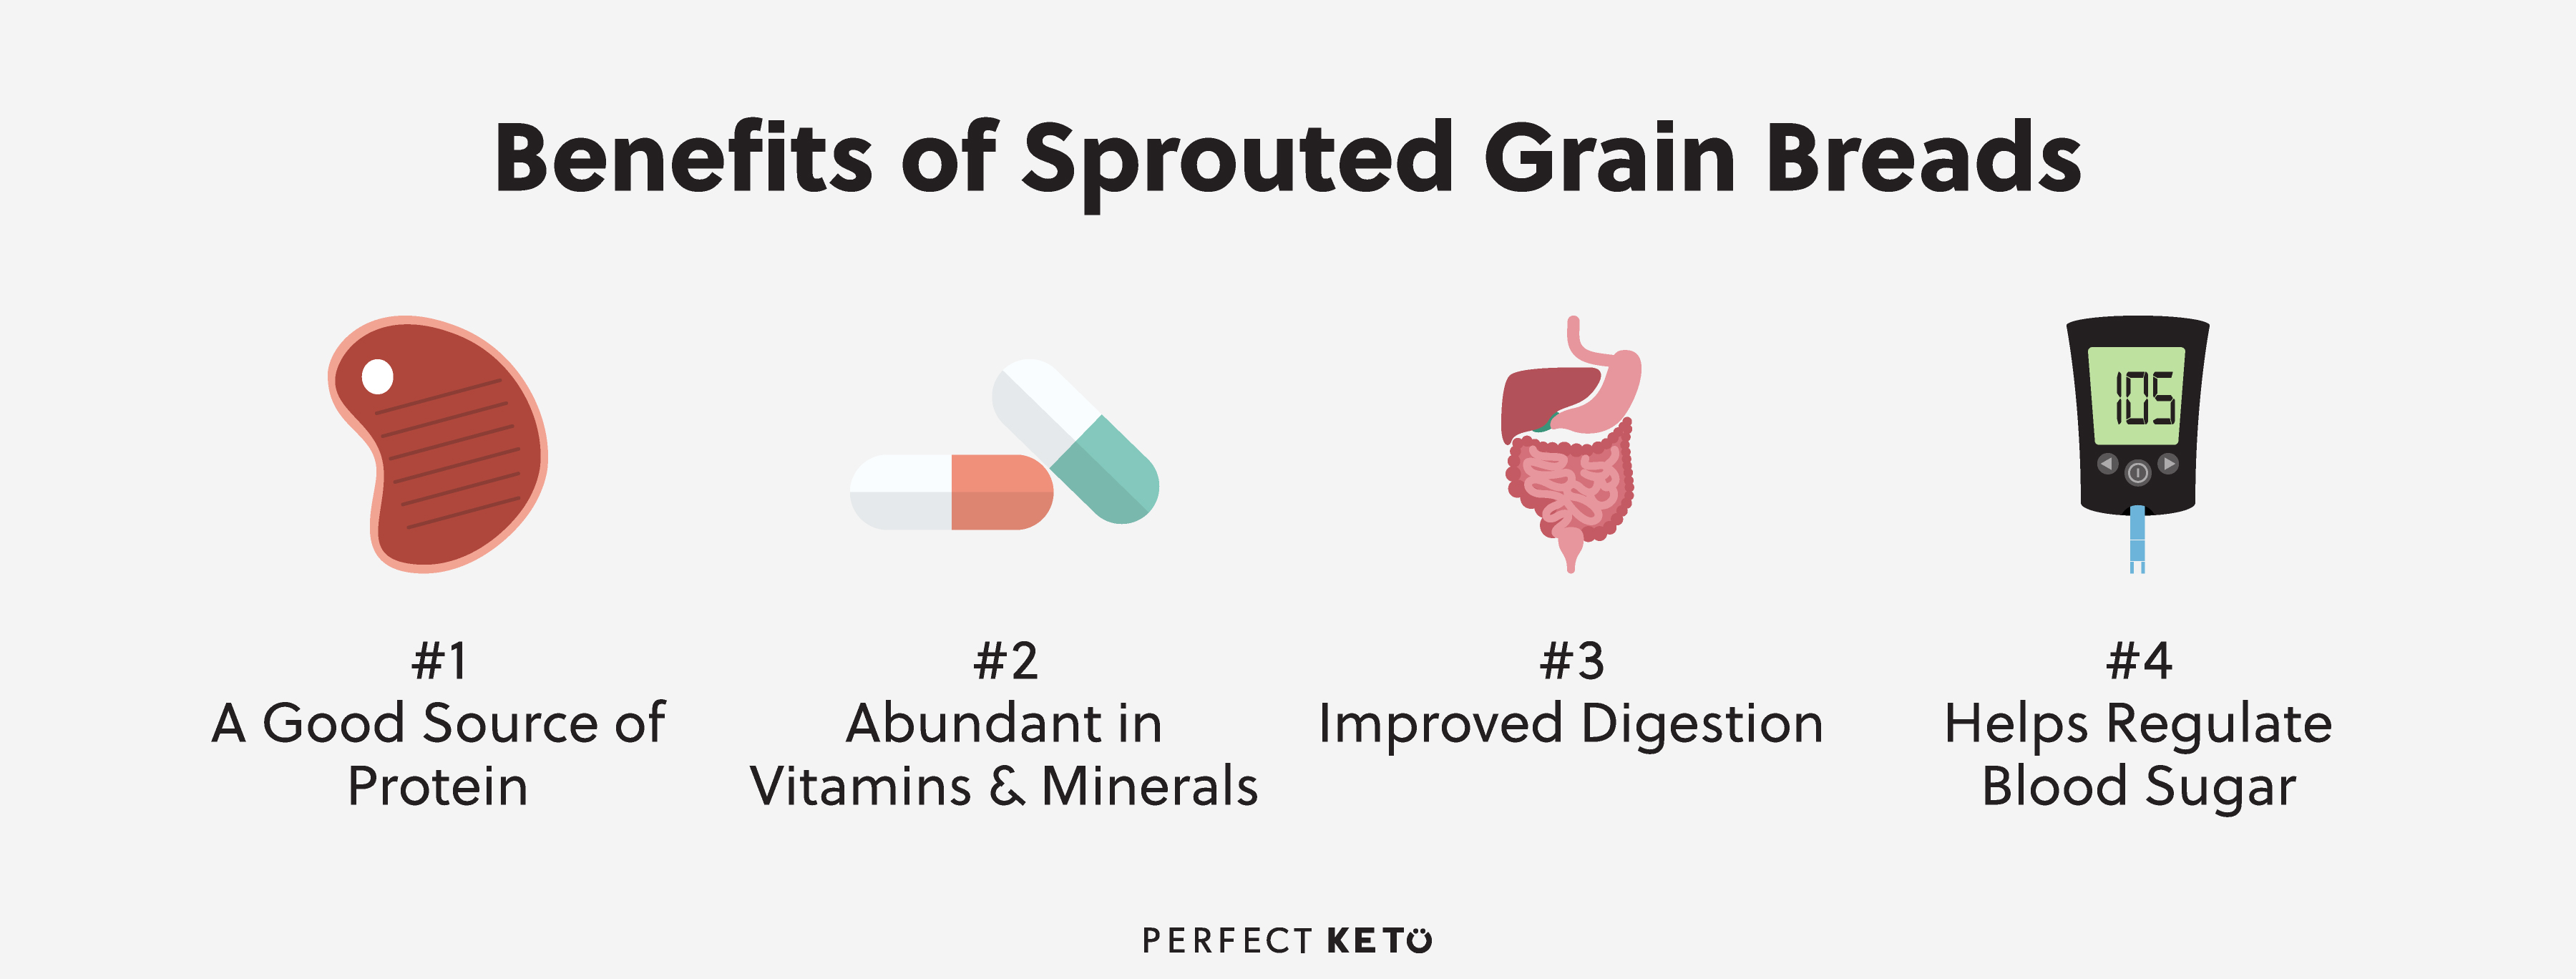 benefits-of-sprouted-grain-breads.jpg